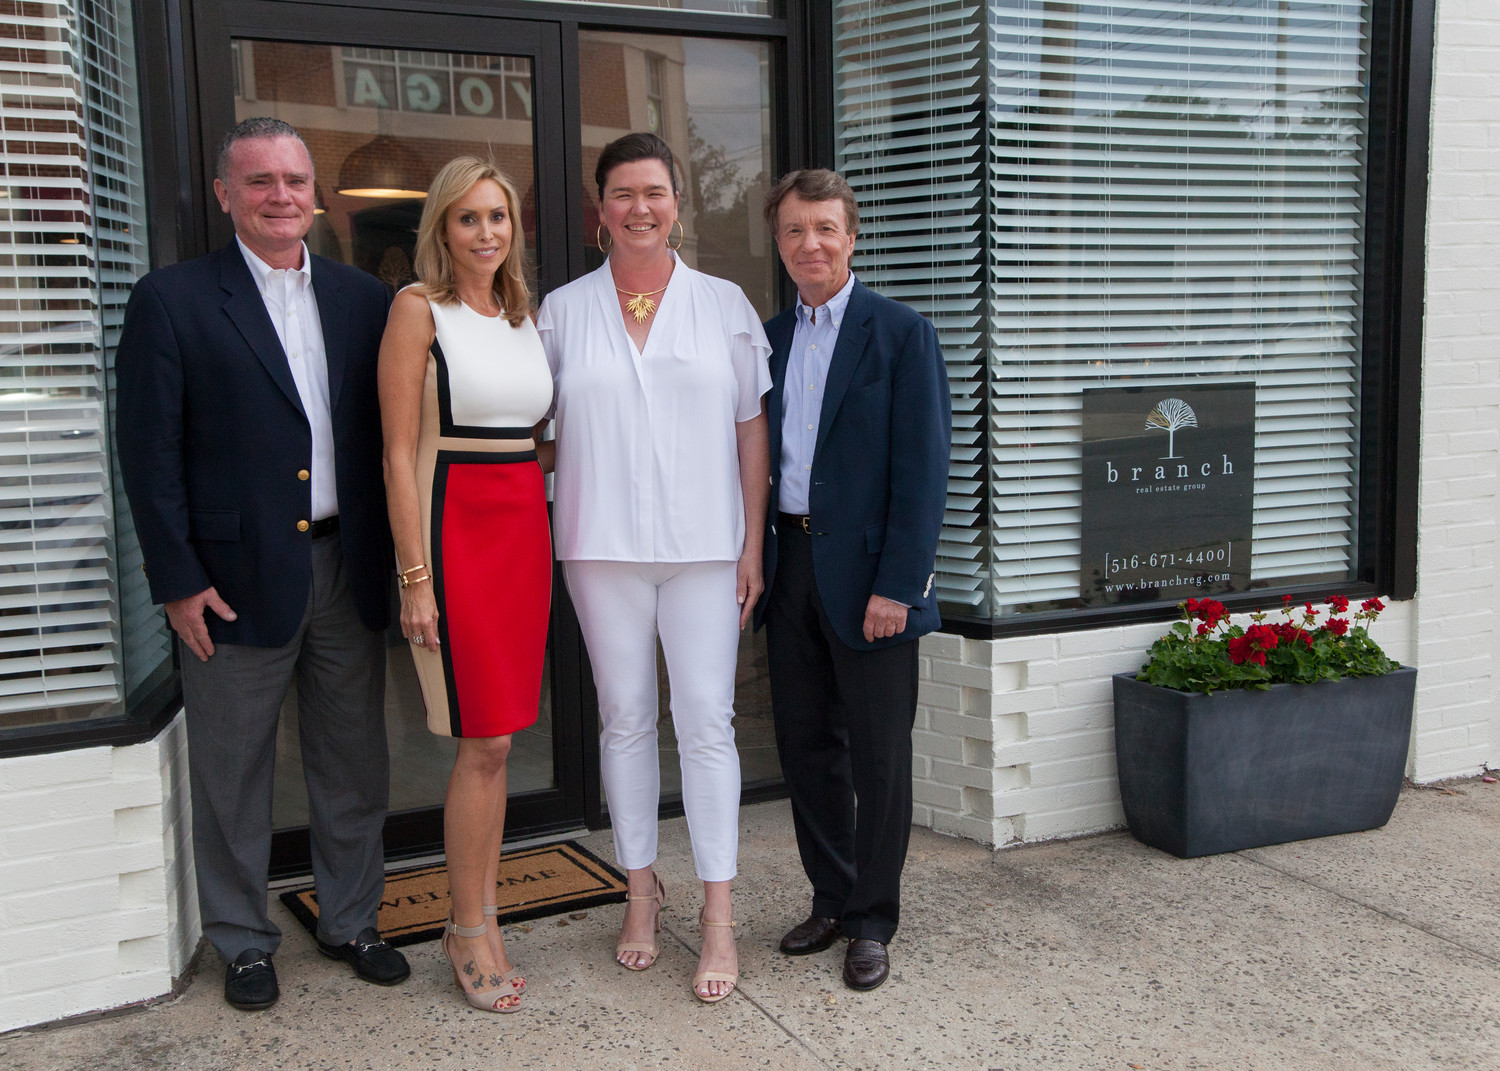 Branch Realty partners John Breen, left, Cristina Volz, Molly Deegan and Stephen Buerger outside their new offices on Glen Cove Avenue